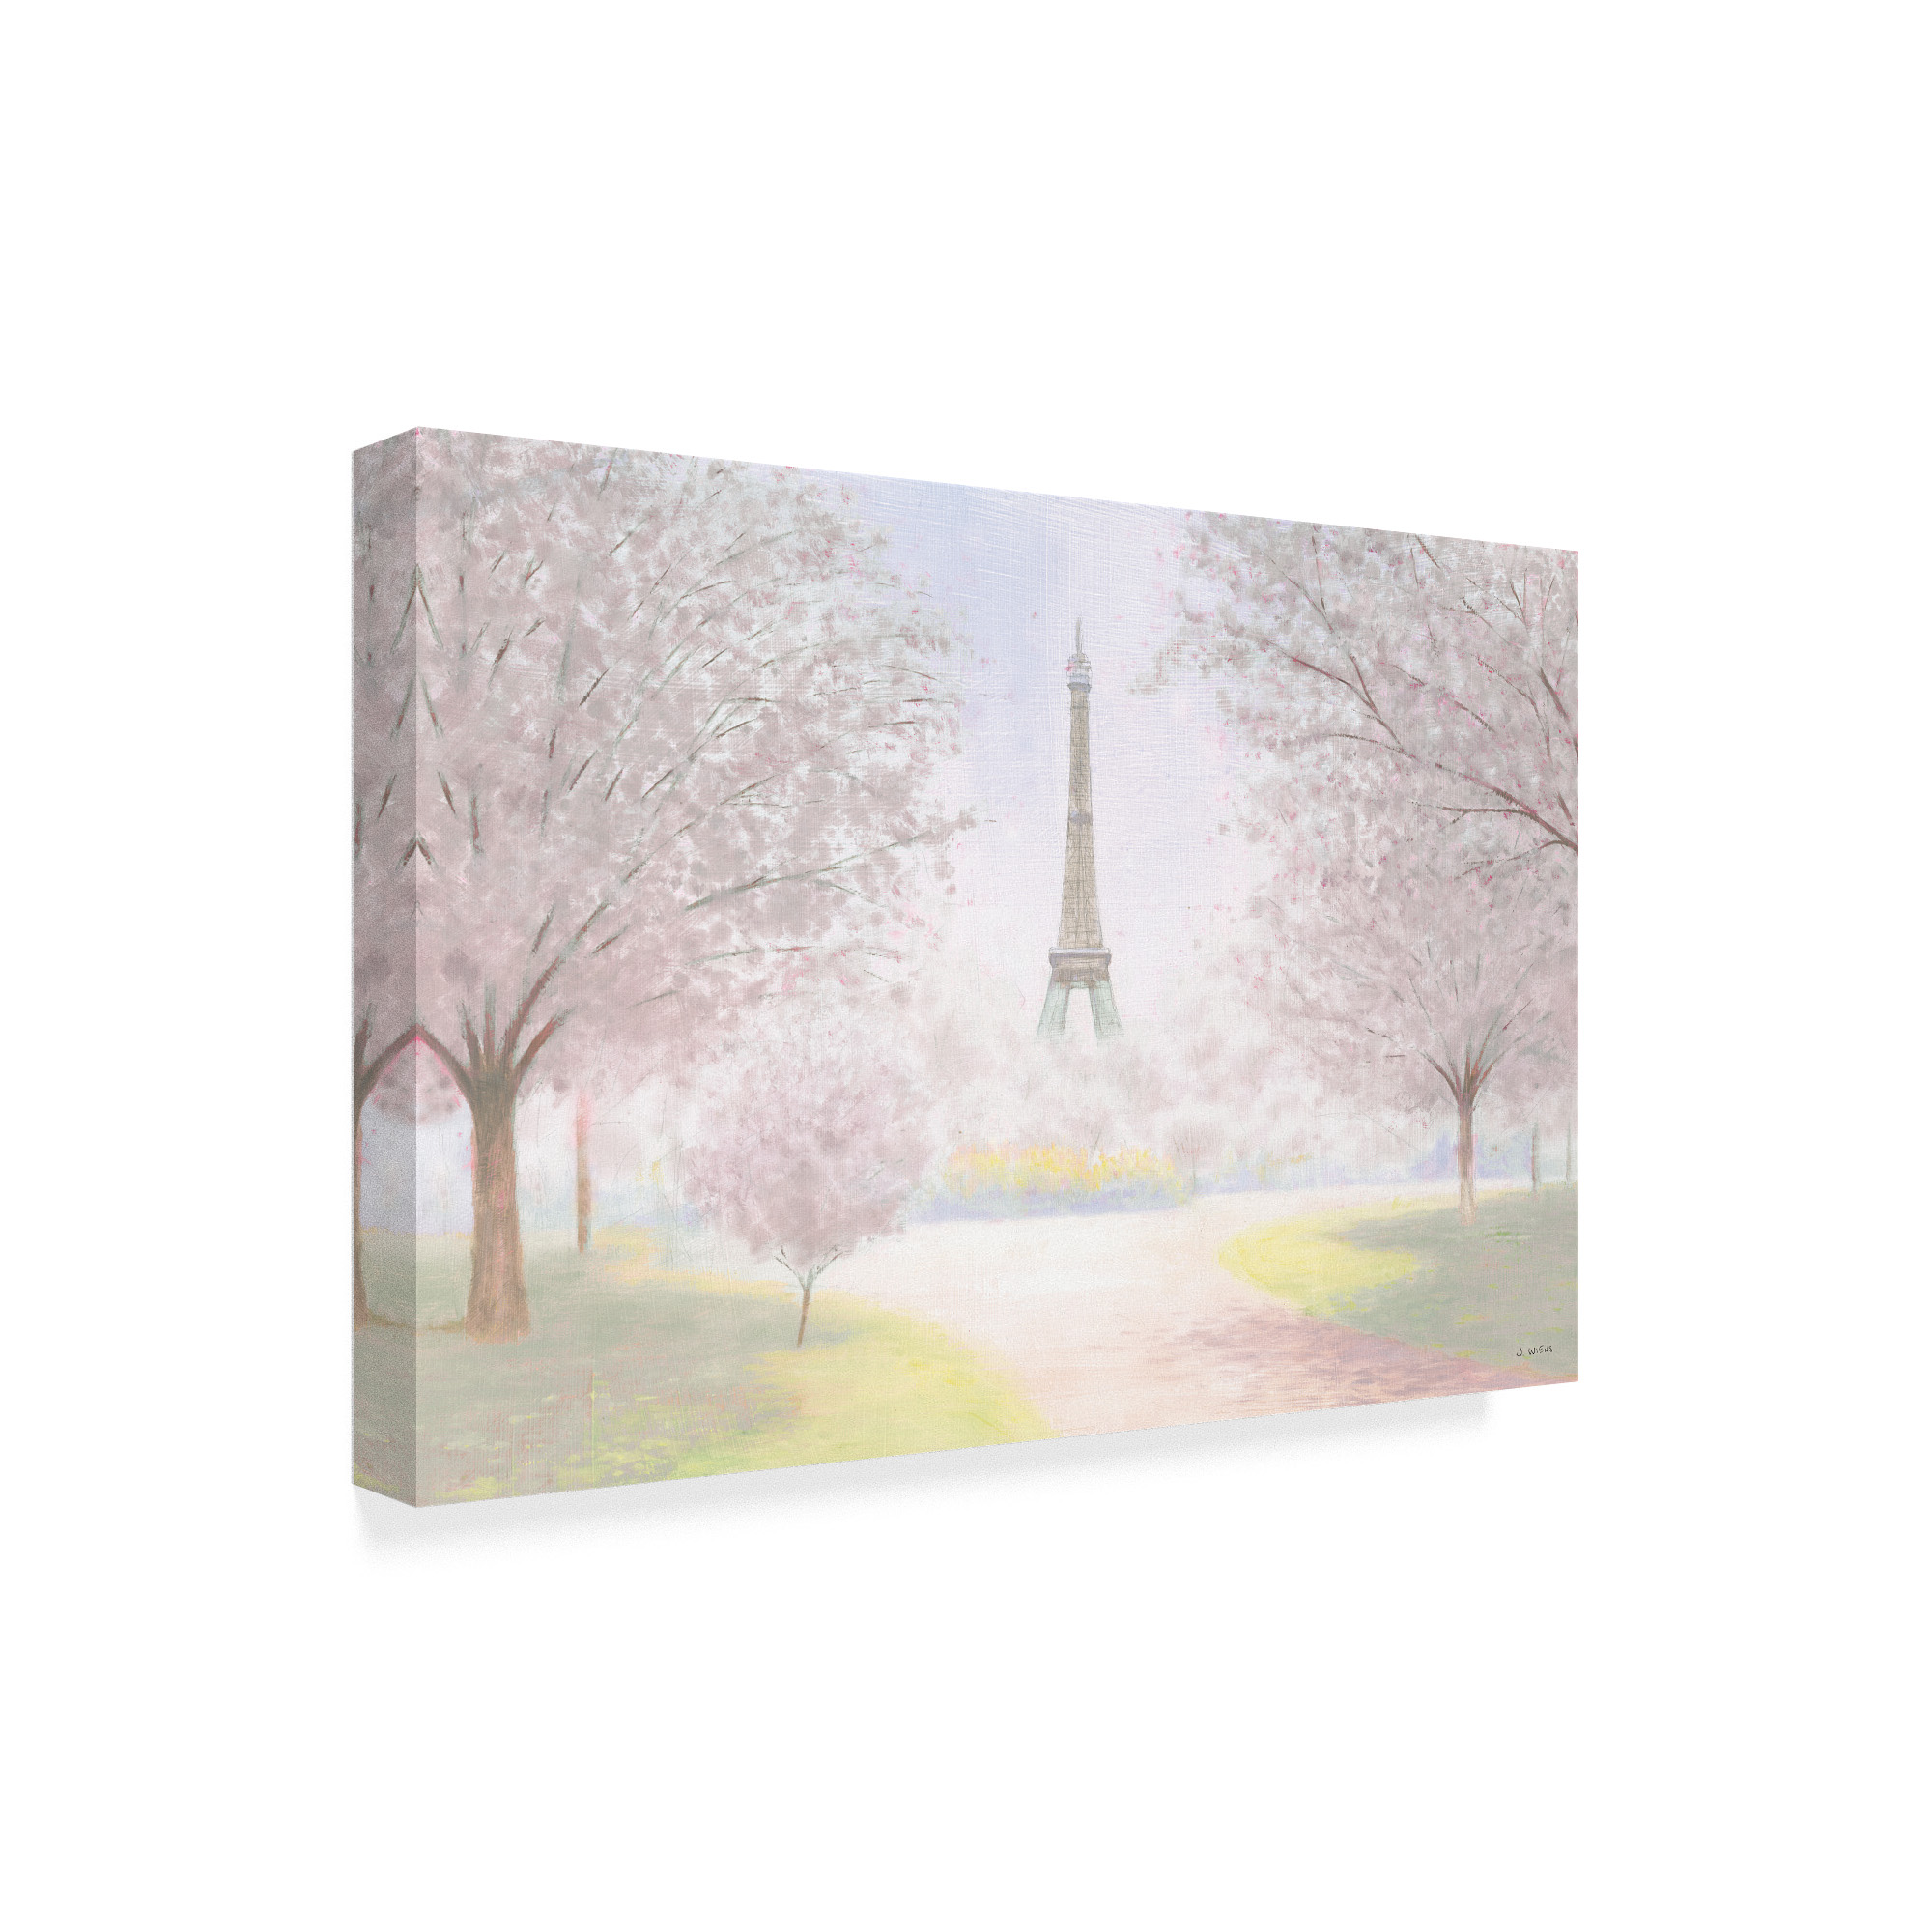 Global Gallery James Wiens Parisian Spring Giclee Stretched Canvas Artwork 24 x 16